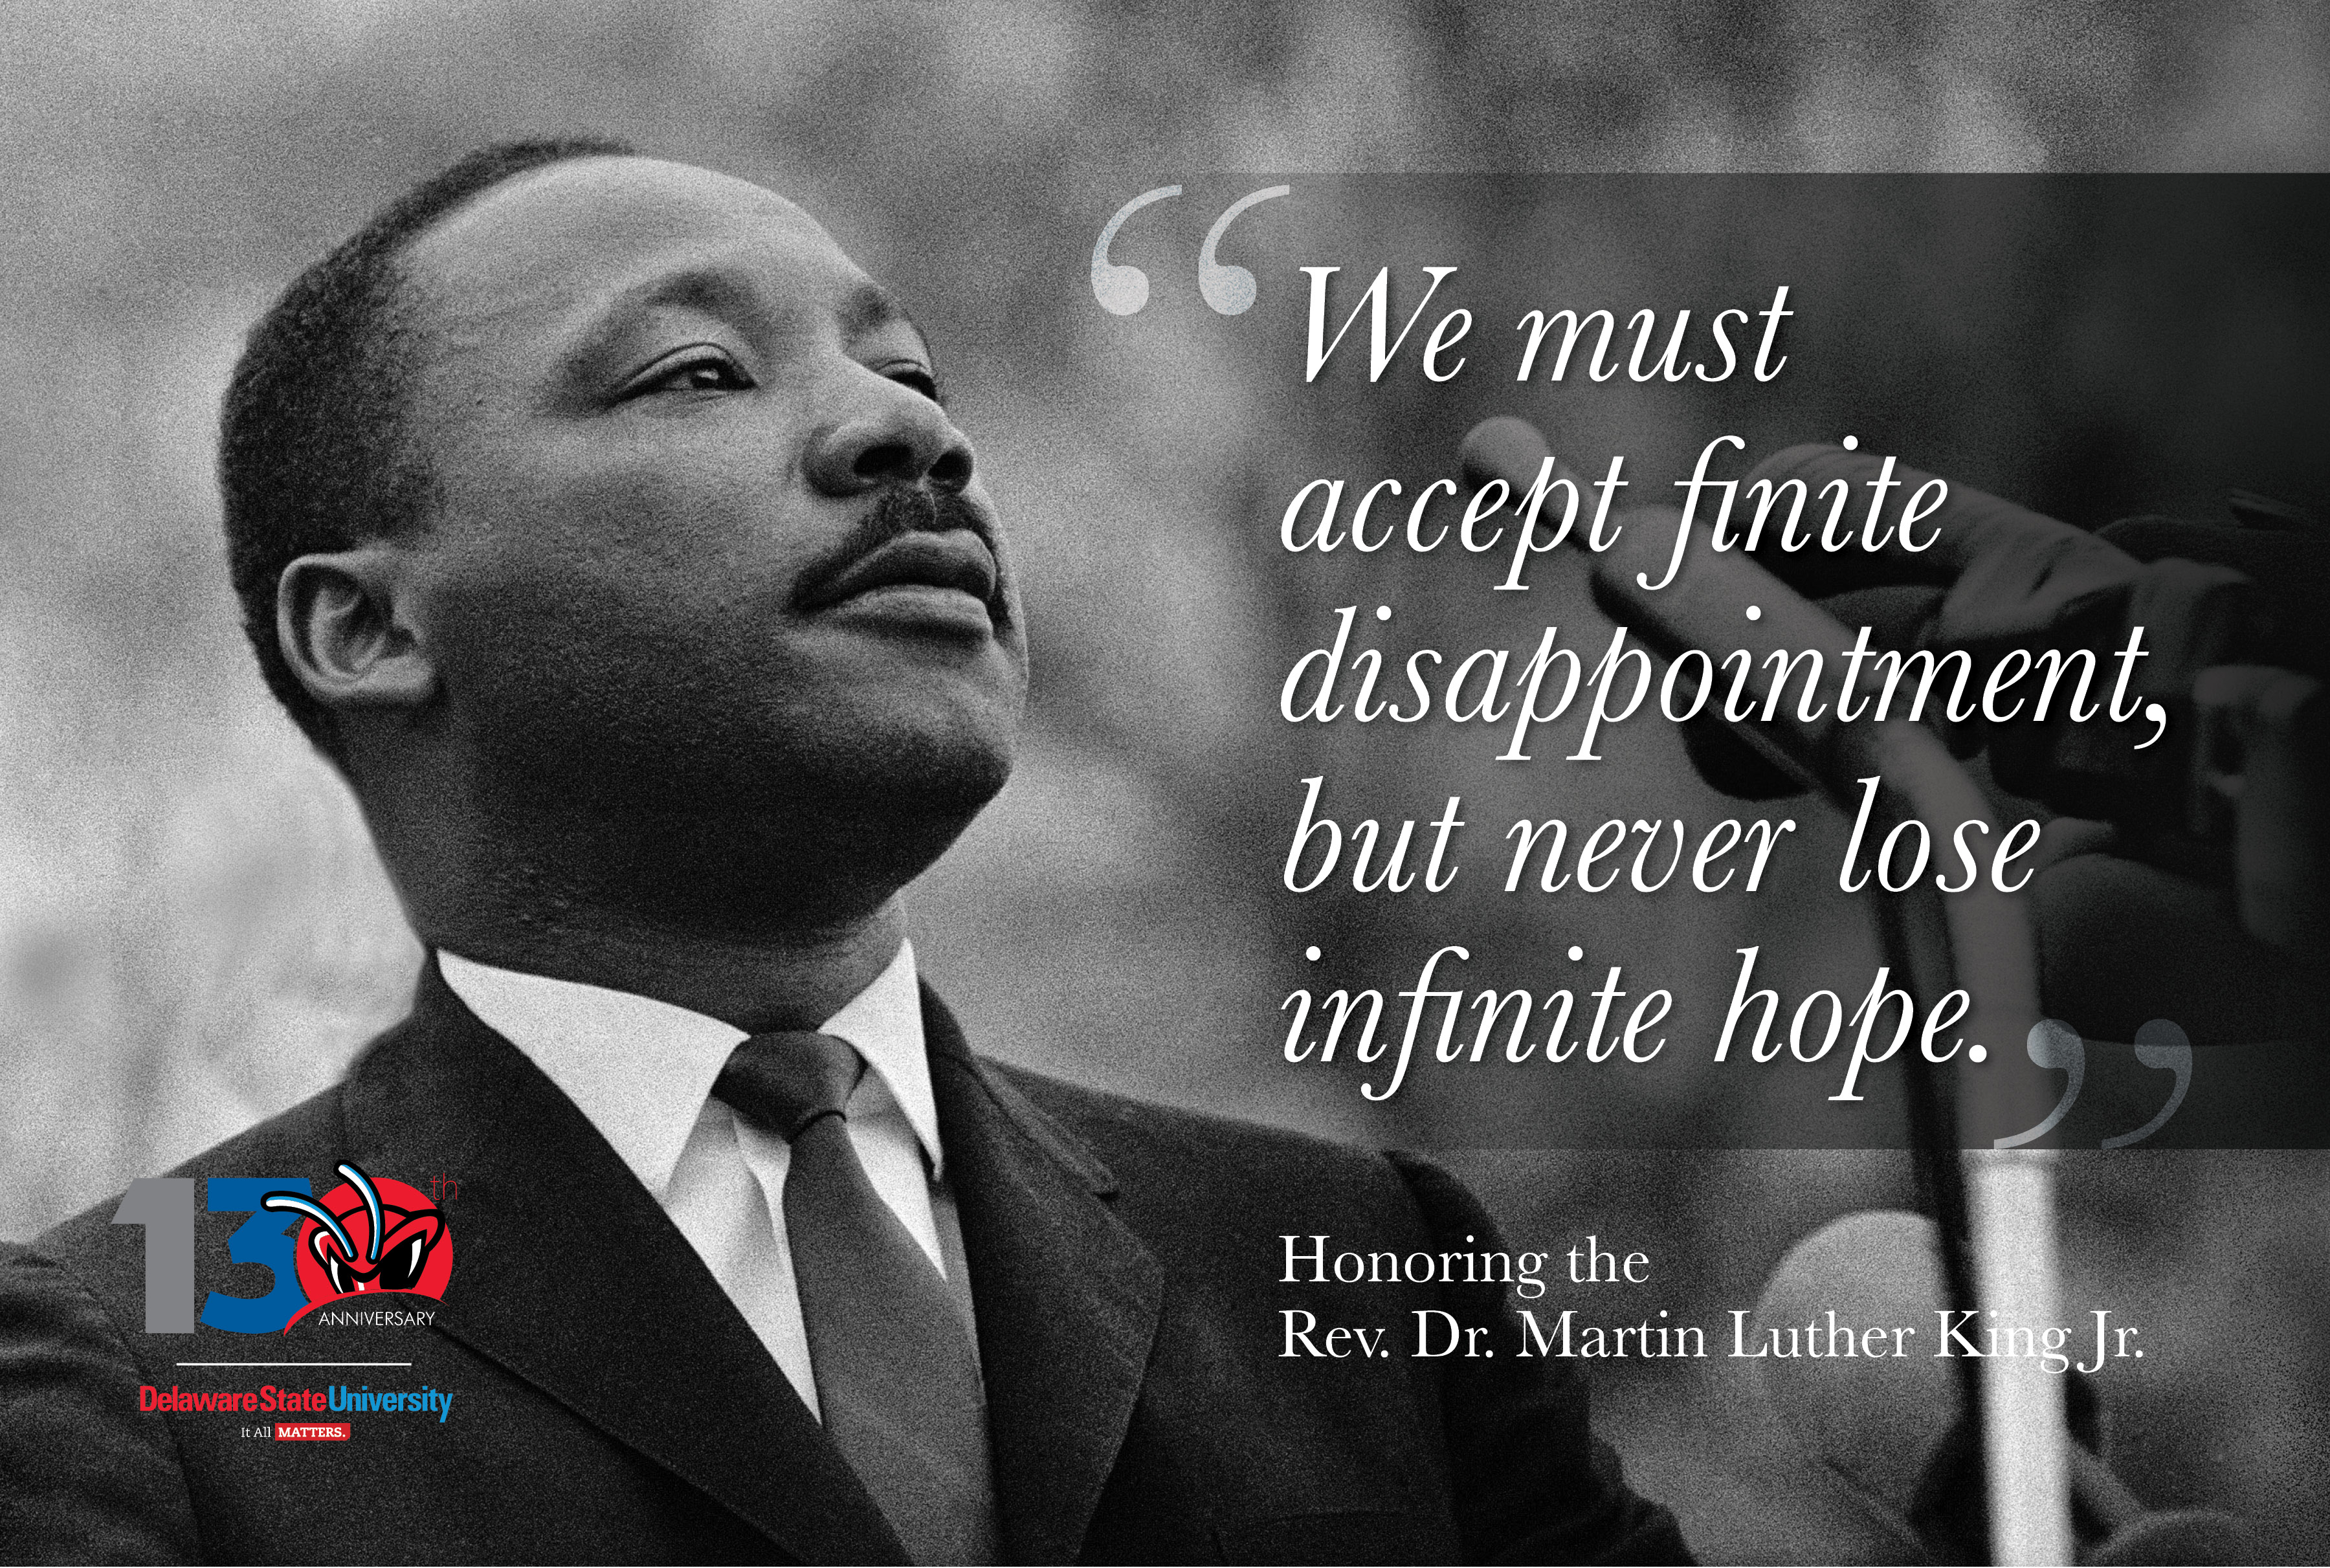 Today we honor the life and legacy of the Rev. Dr. Martin Luther King Jr.